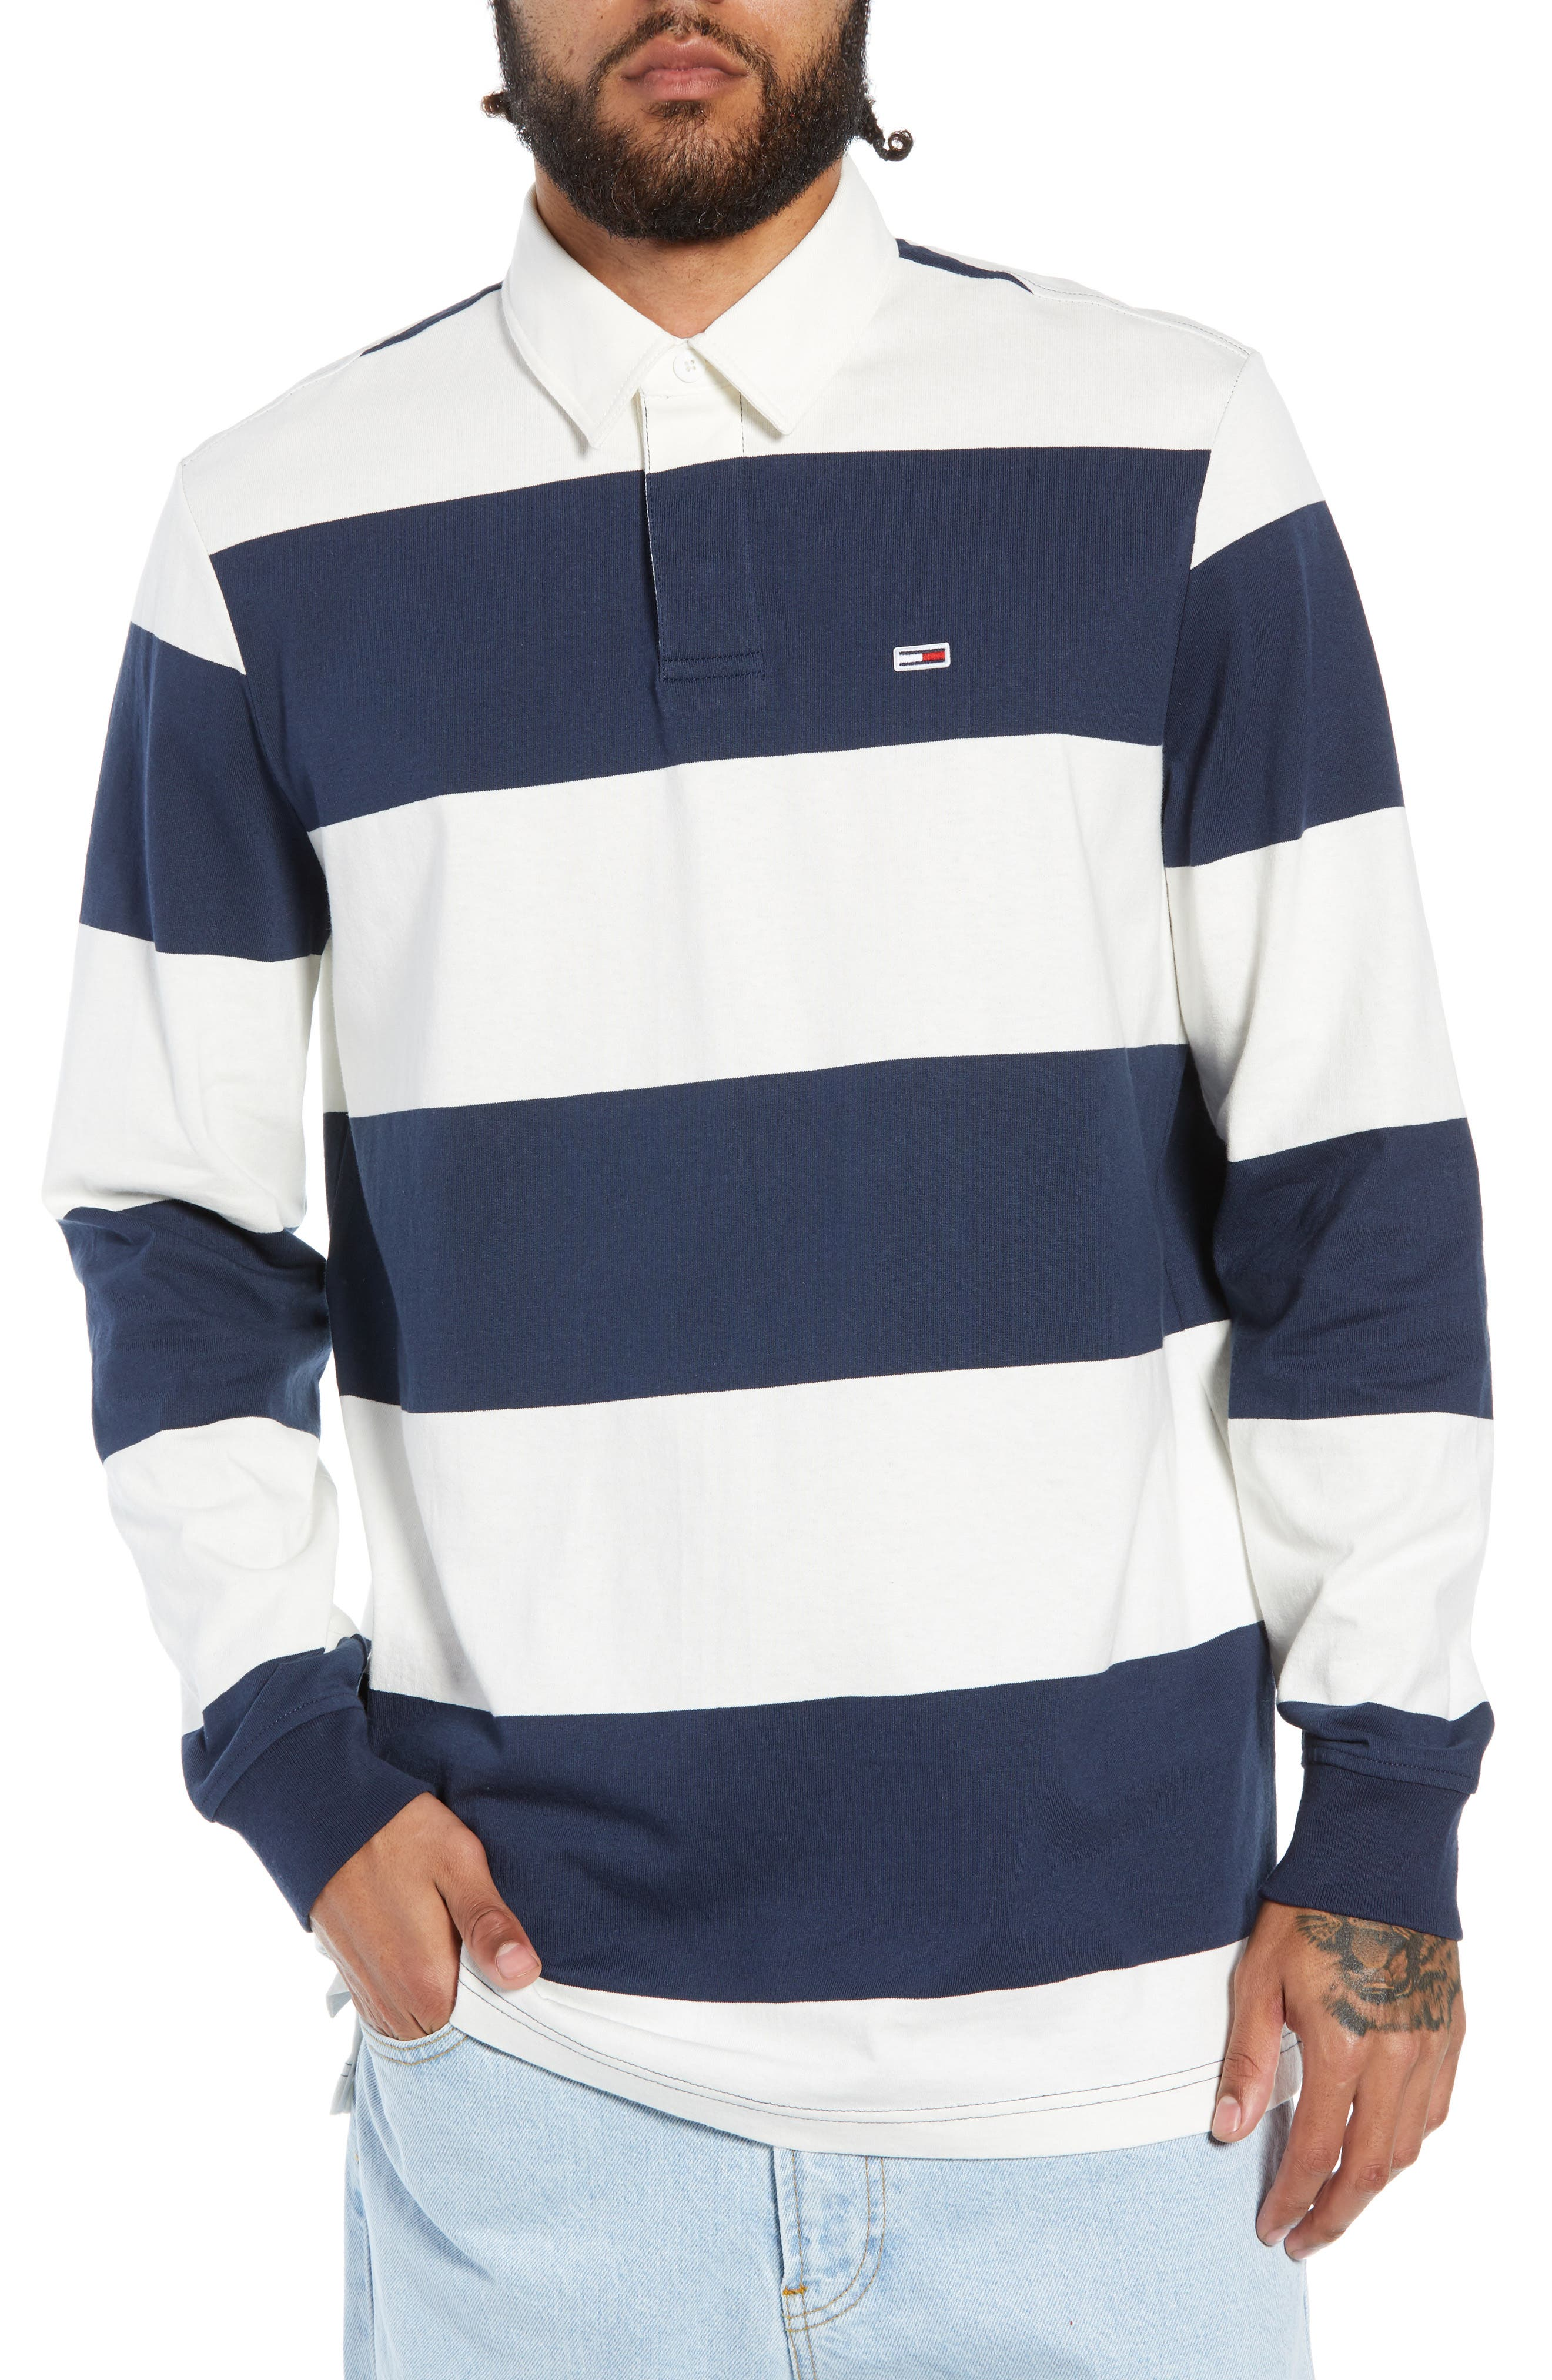 TJM Tommy Classics Rugby Shirt,                         Main,                         color, 100